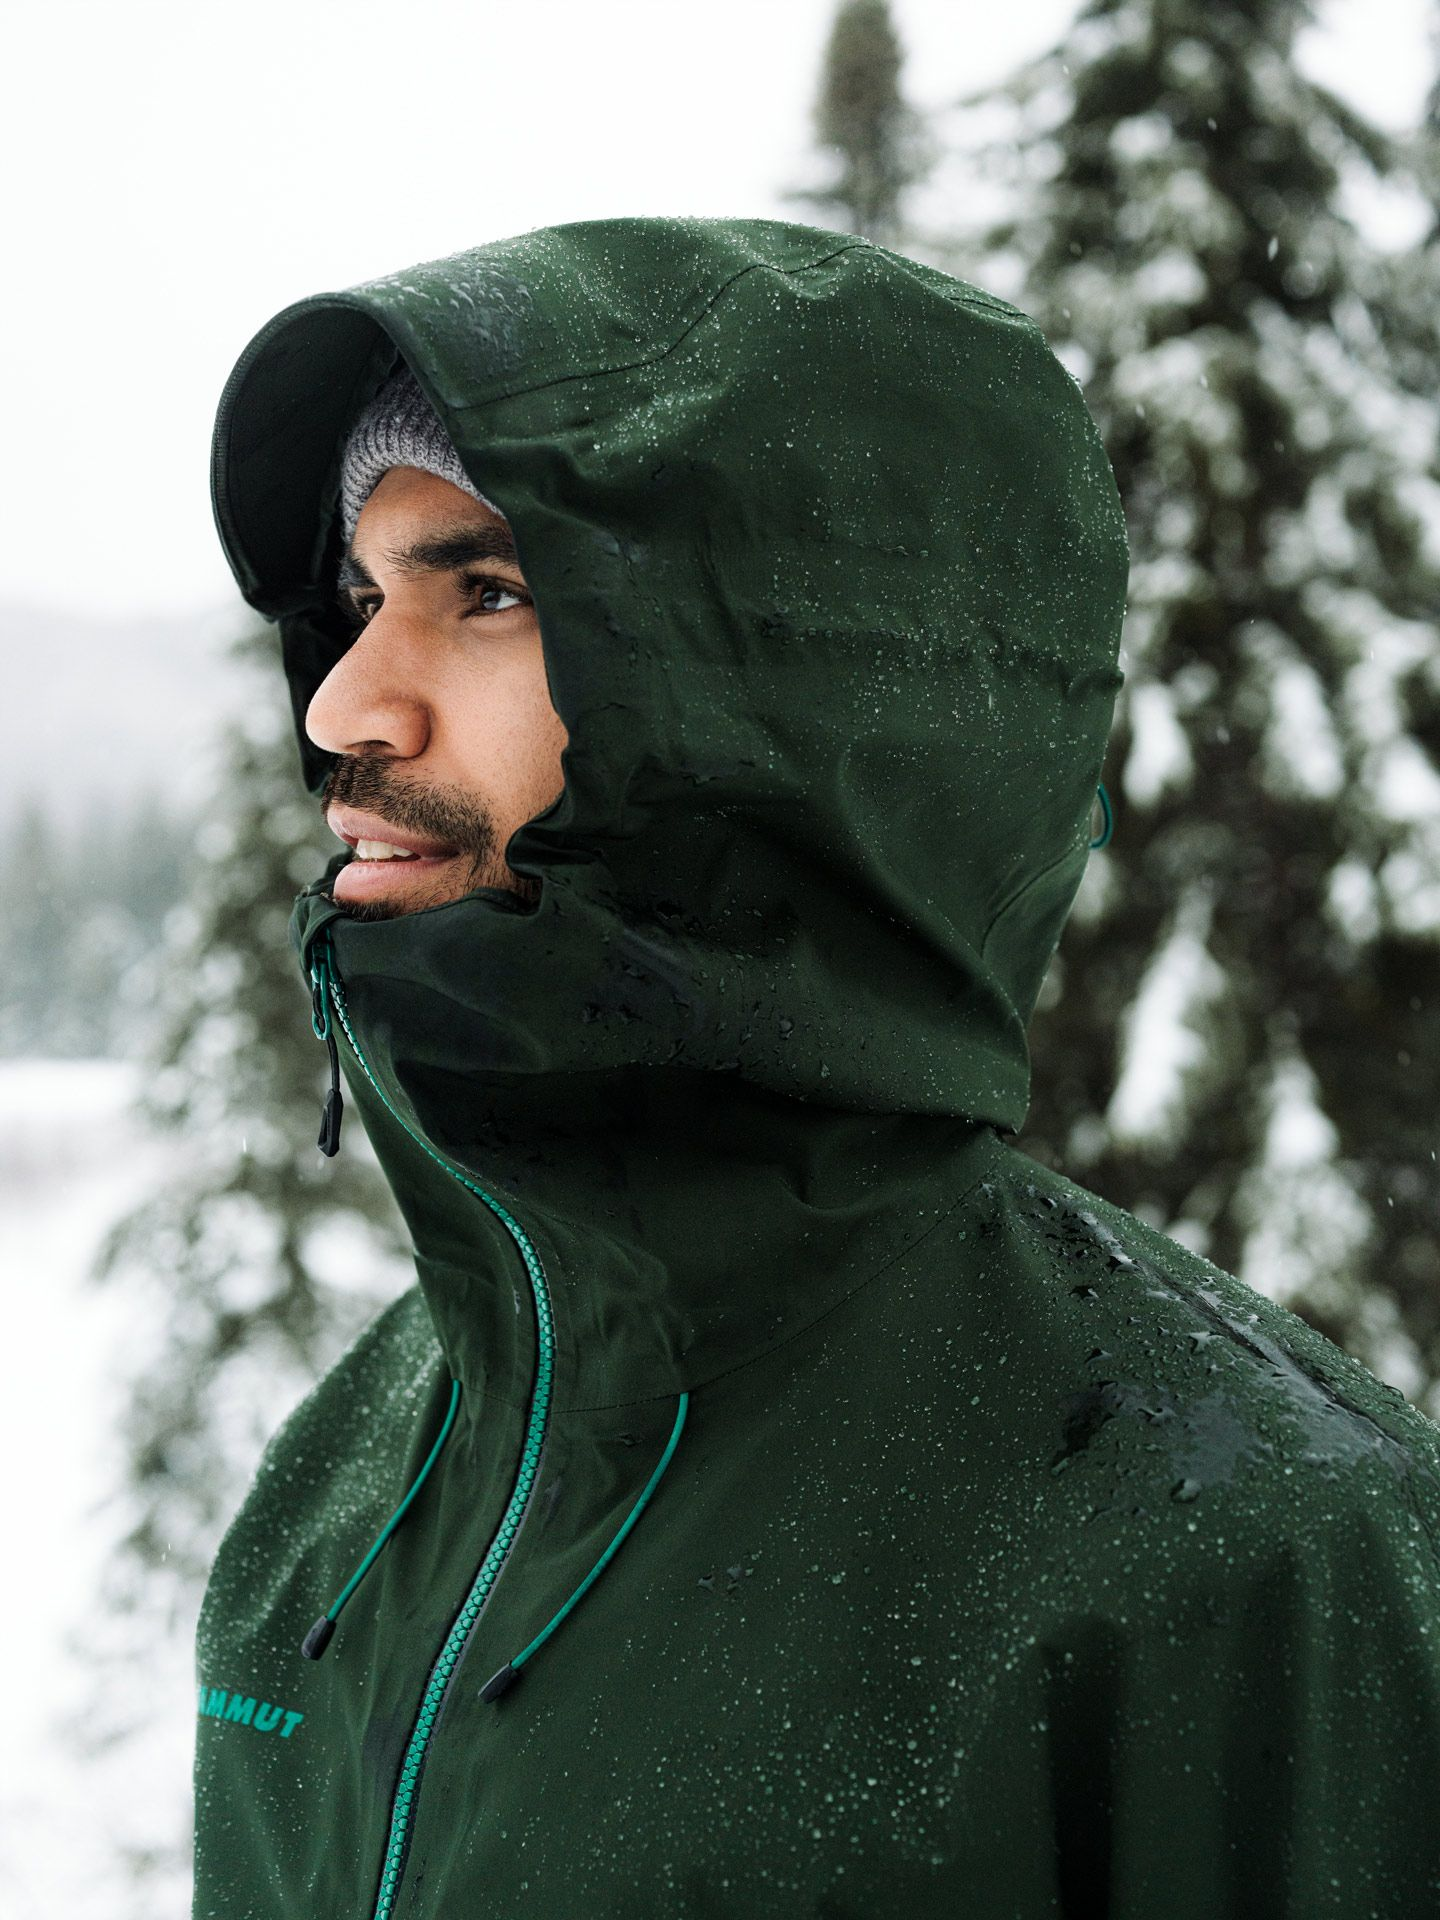 Sail sports gear photographed by Alexi Hobbs of man wearing water-repellent forest green jacket